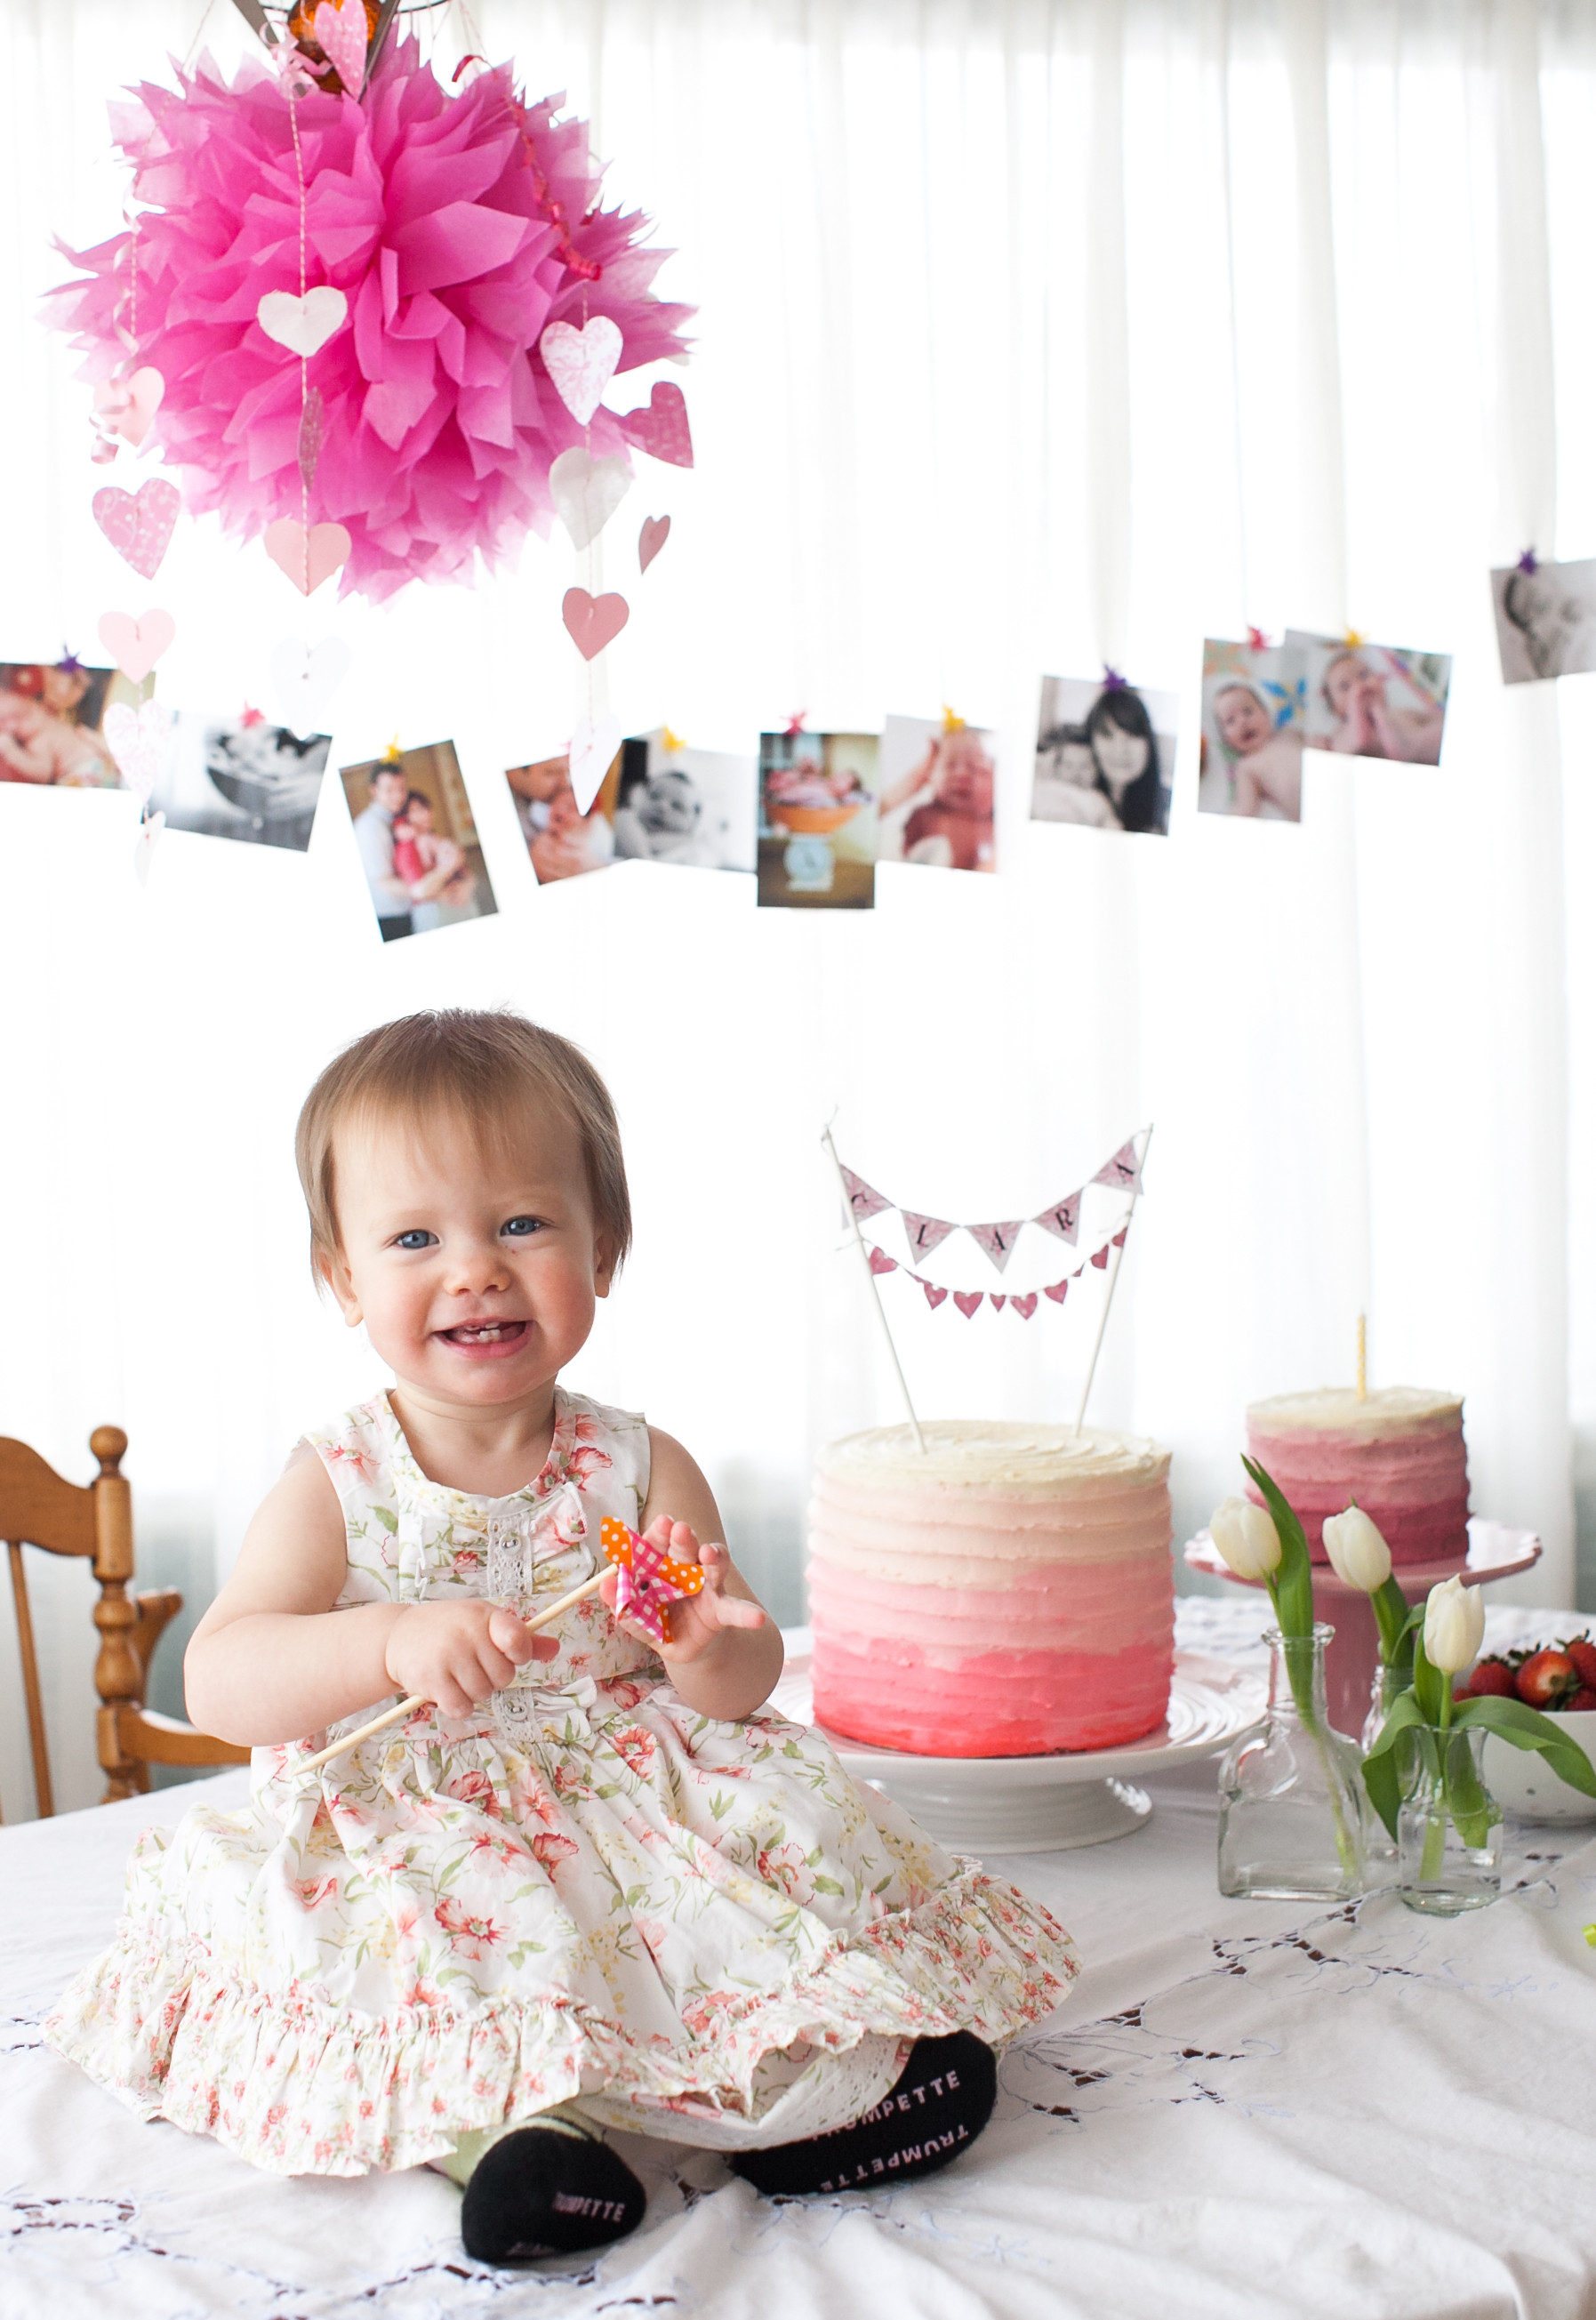 First Birthday Gift Ideas For Girls  First birthday party ideas recipe Apple Spice Cake with